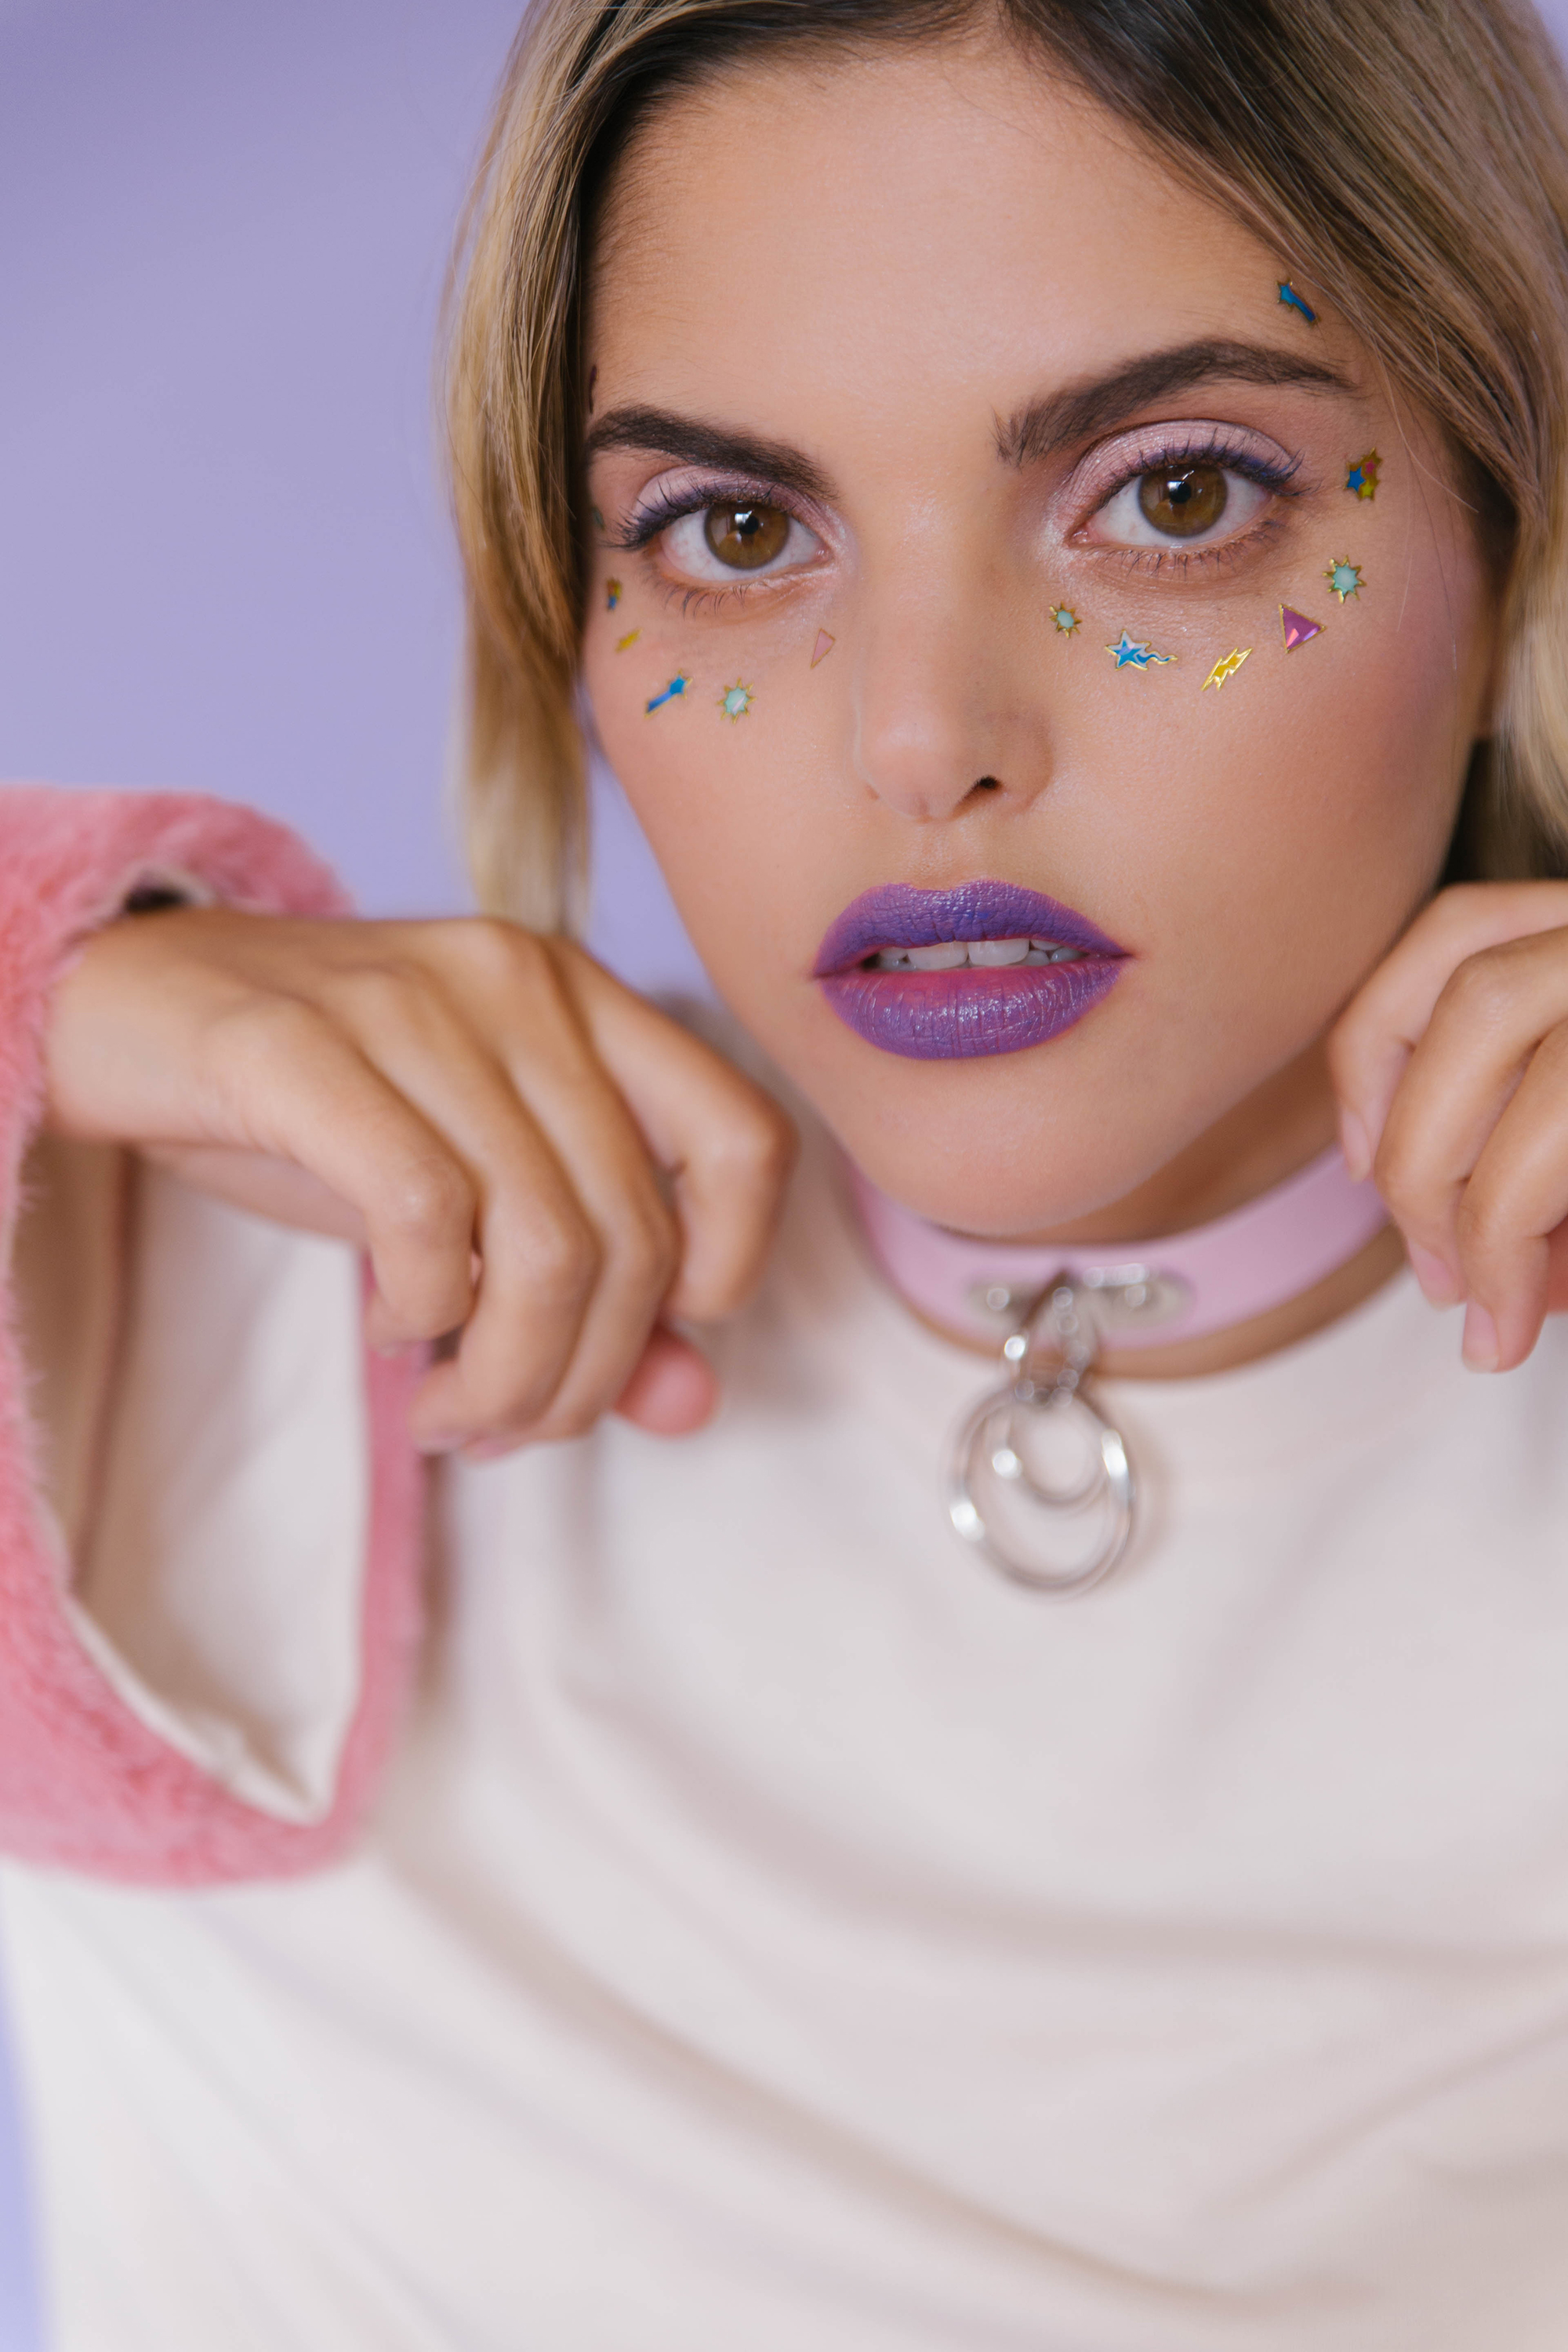 Candy Says Editorial by Marie-Eve Rose